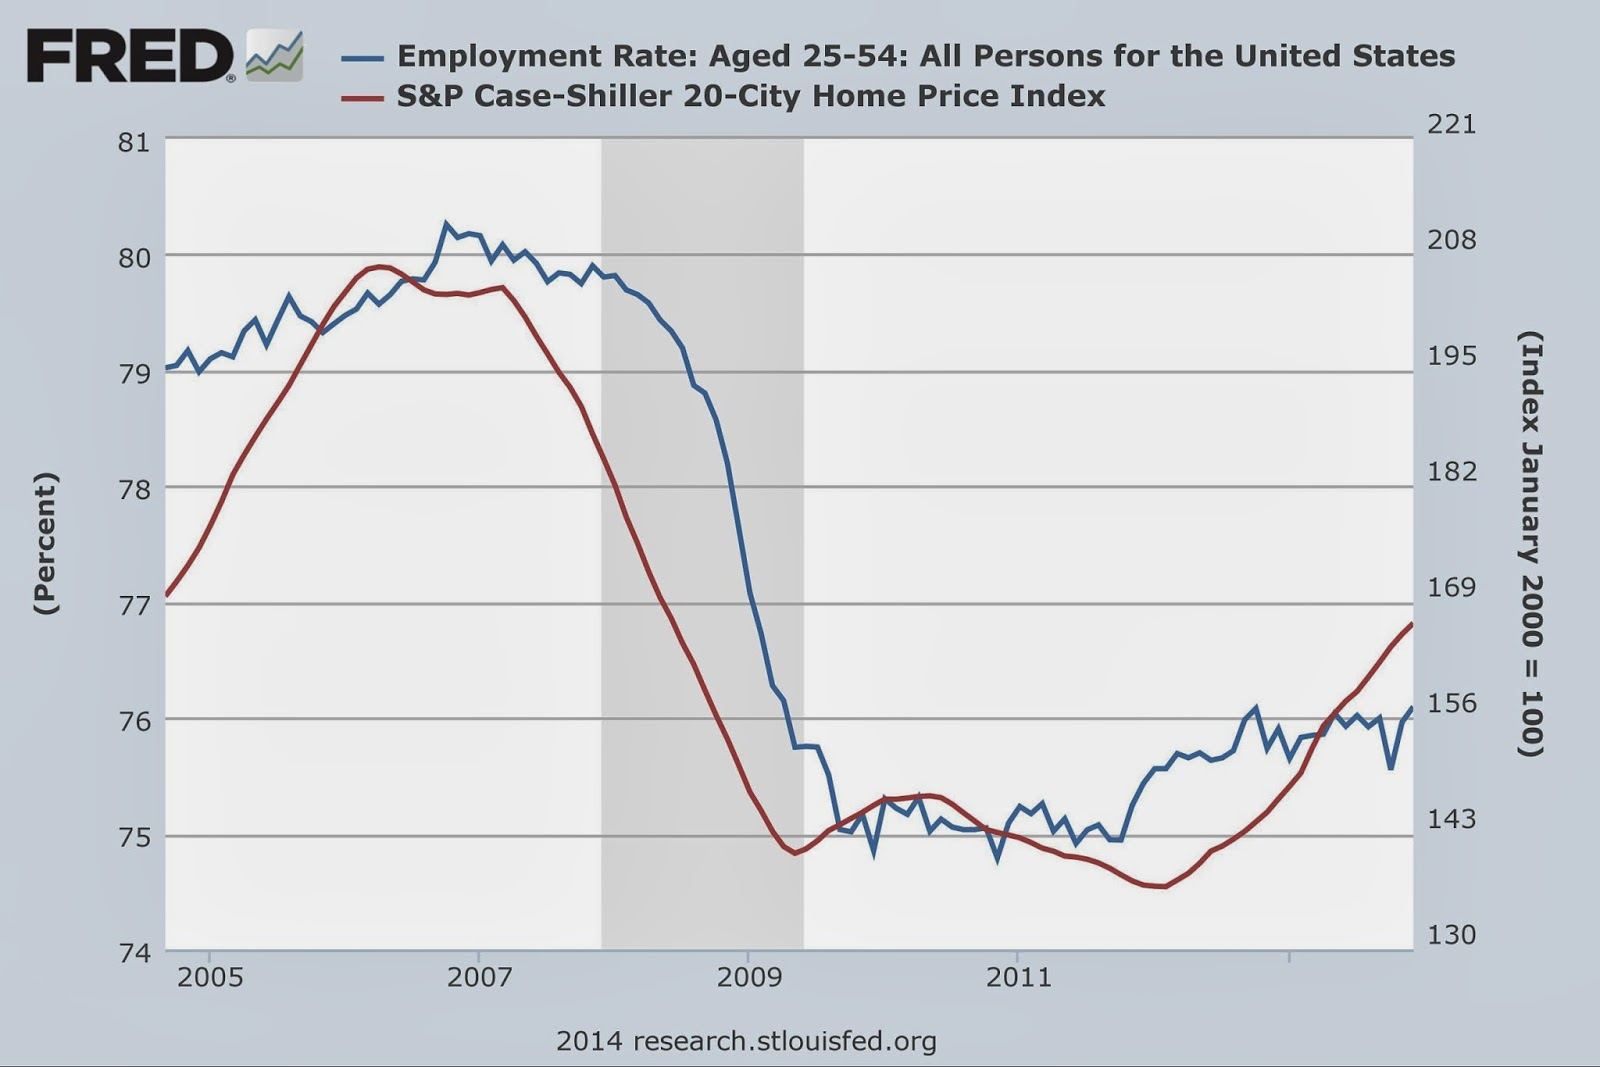 Chart of Employment Rate: Aged 25-54: All Persons for the United States and S&P Case-Shiller 20-City Home Price Index during the Great Recession / Lesser Depression